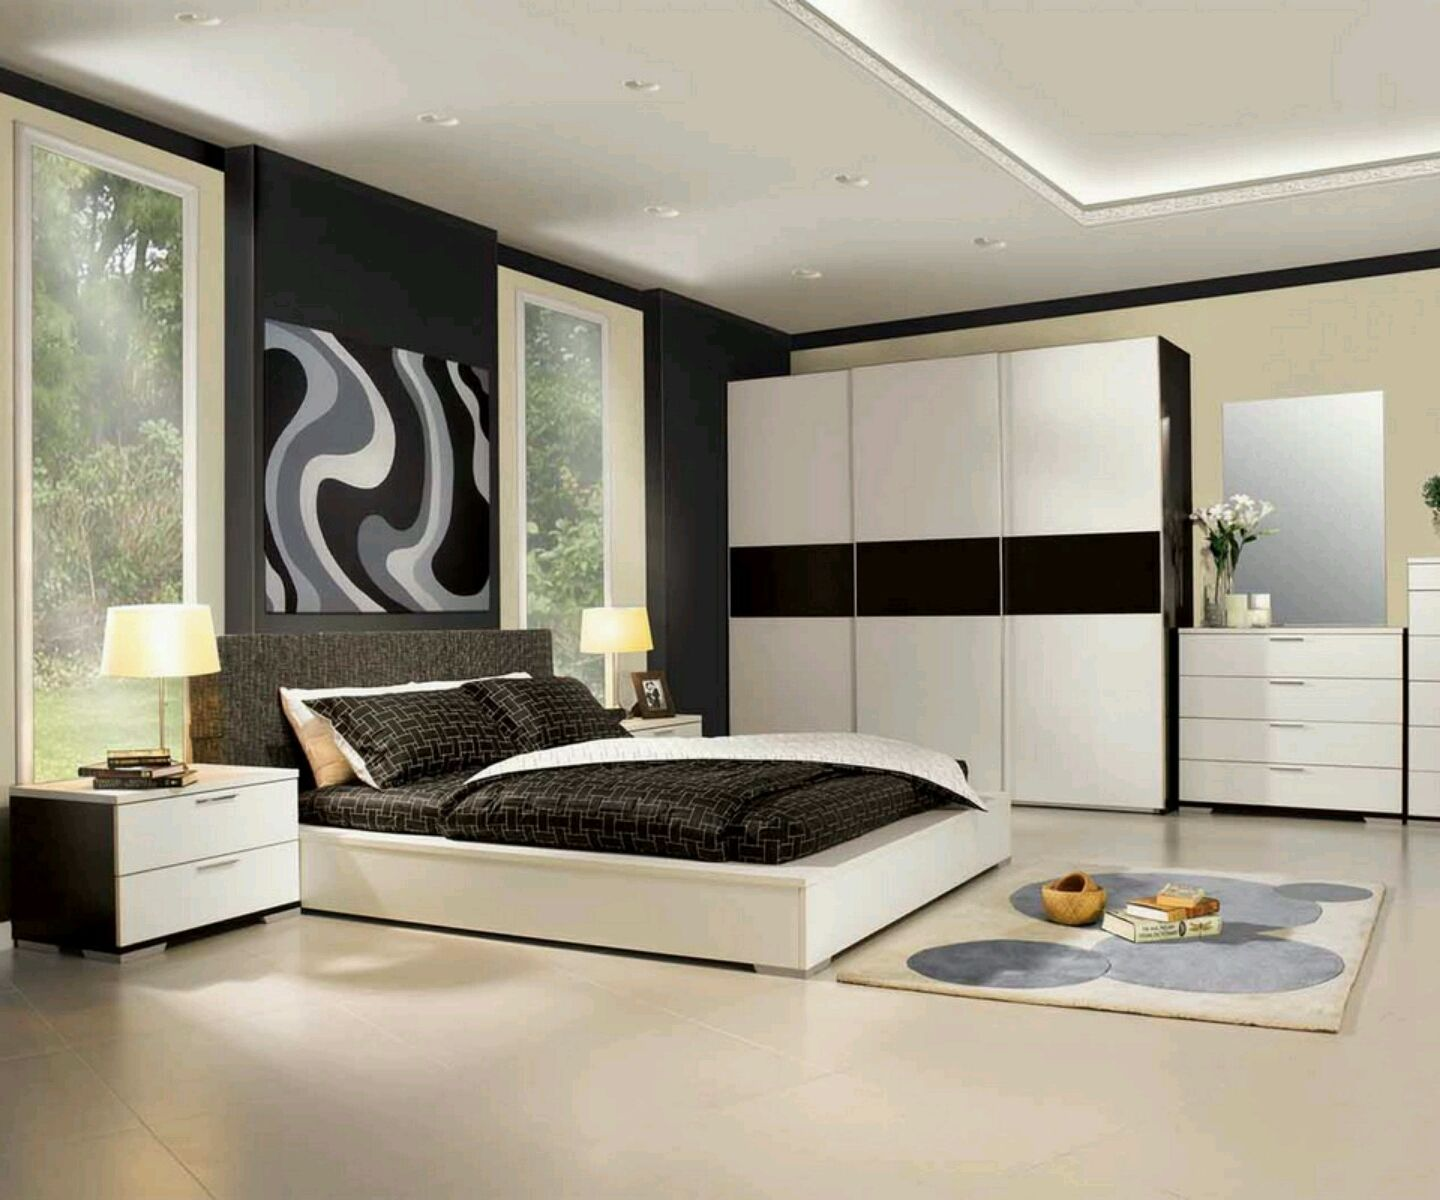 Modern Furniture Design | Bedroom furniture design, Modern ...